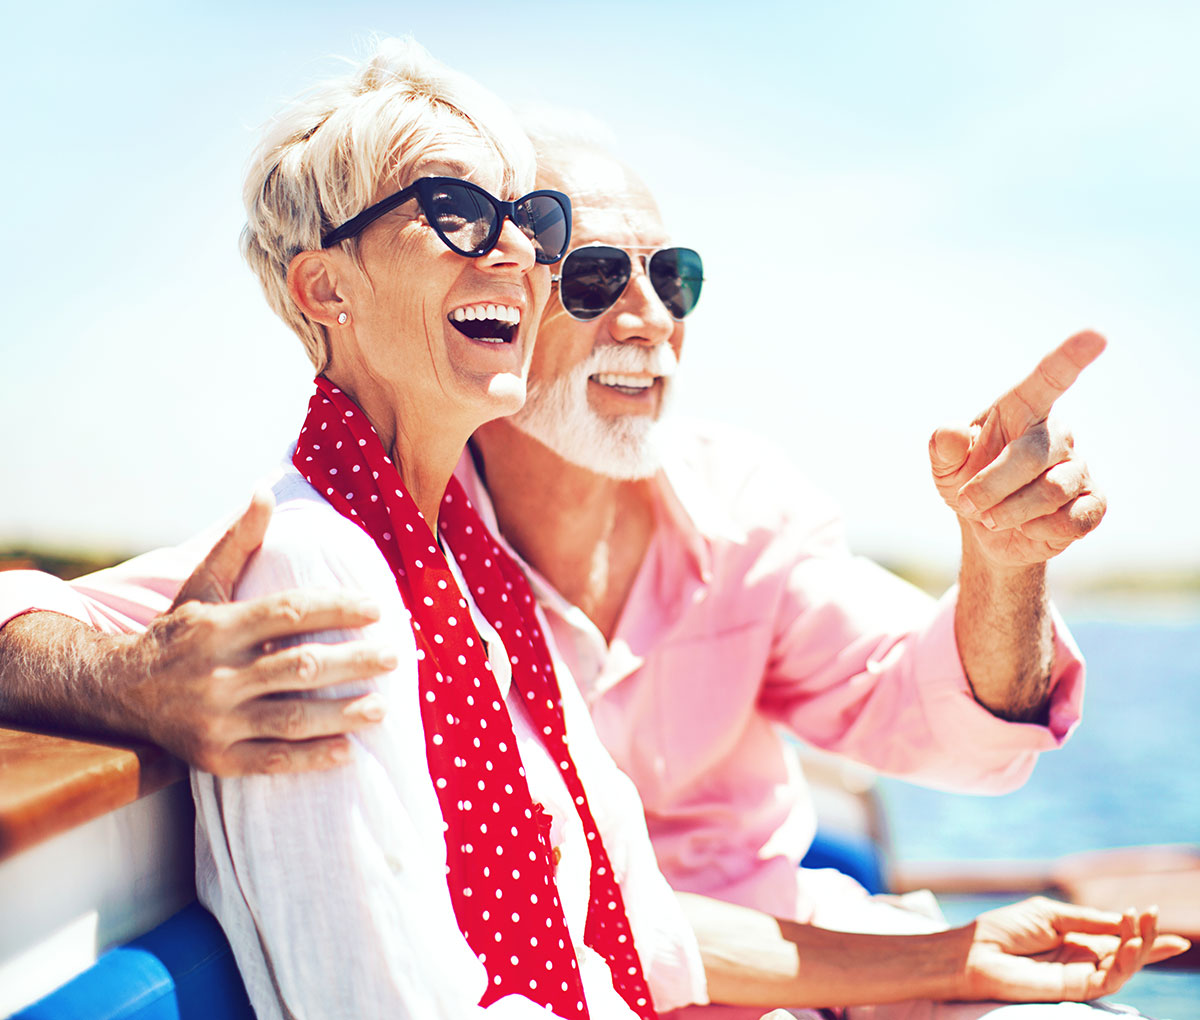 Two adult seniors on a boat in sunglasses with the sun shinning